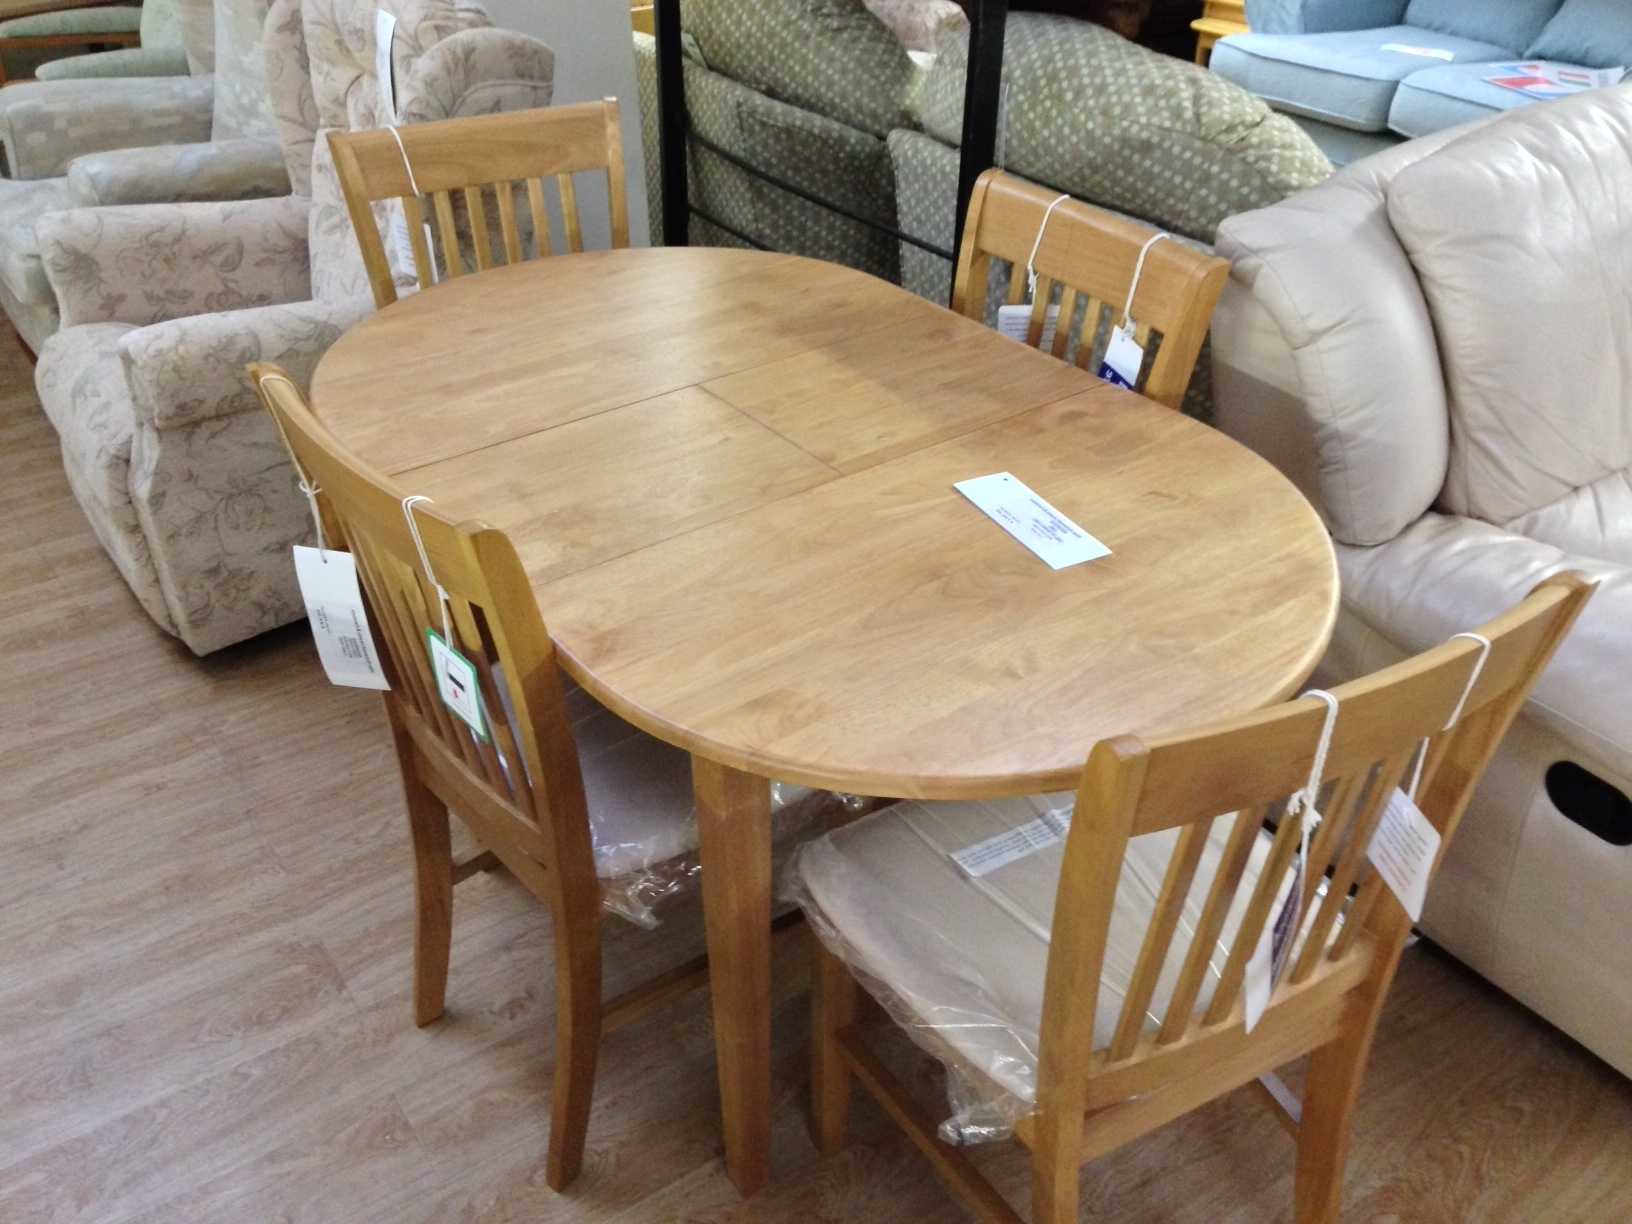 Class Wooden Extending Dining Table And Chairs Oval Shape Cheap Pertaining To Trendy Oval Extending Dining Tables And Chairs (View 4 of 25)